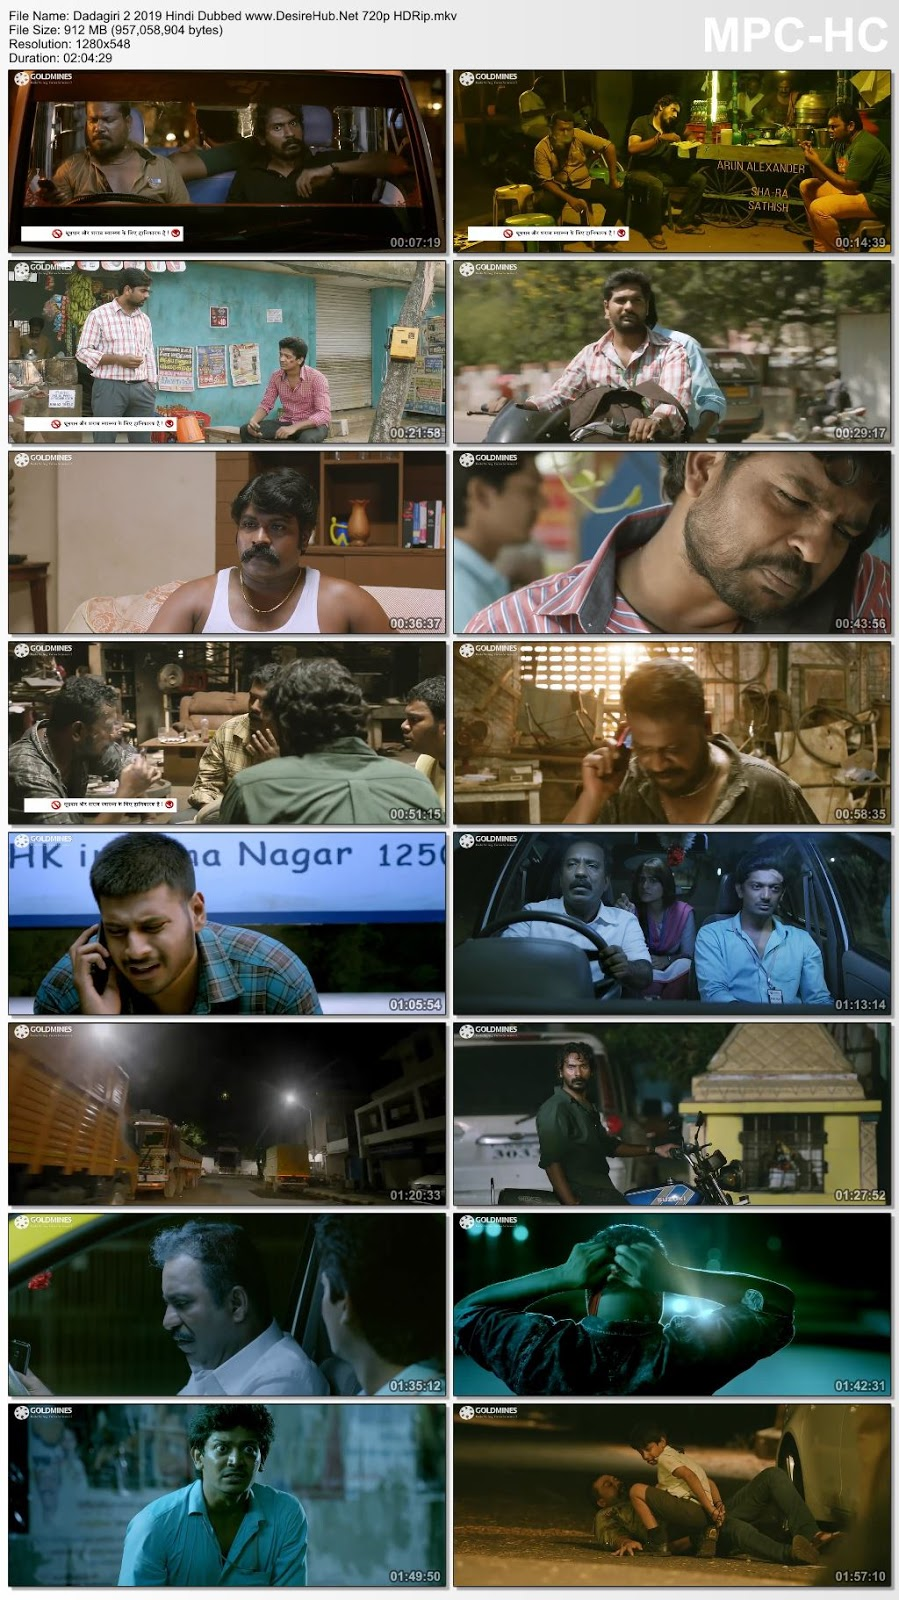 Dadagiri 2 (Maanagaram) 2019 Hindi Dubbed 720p HDRip 900MB Desirehub